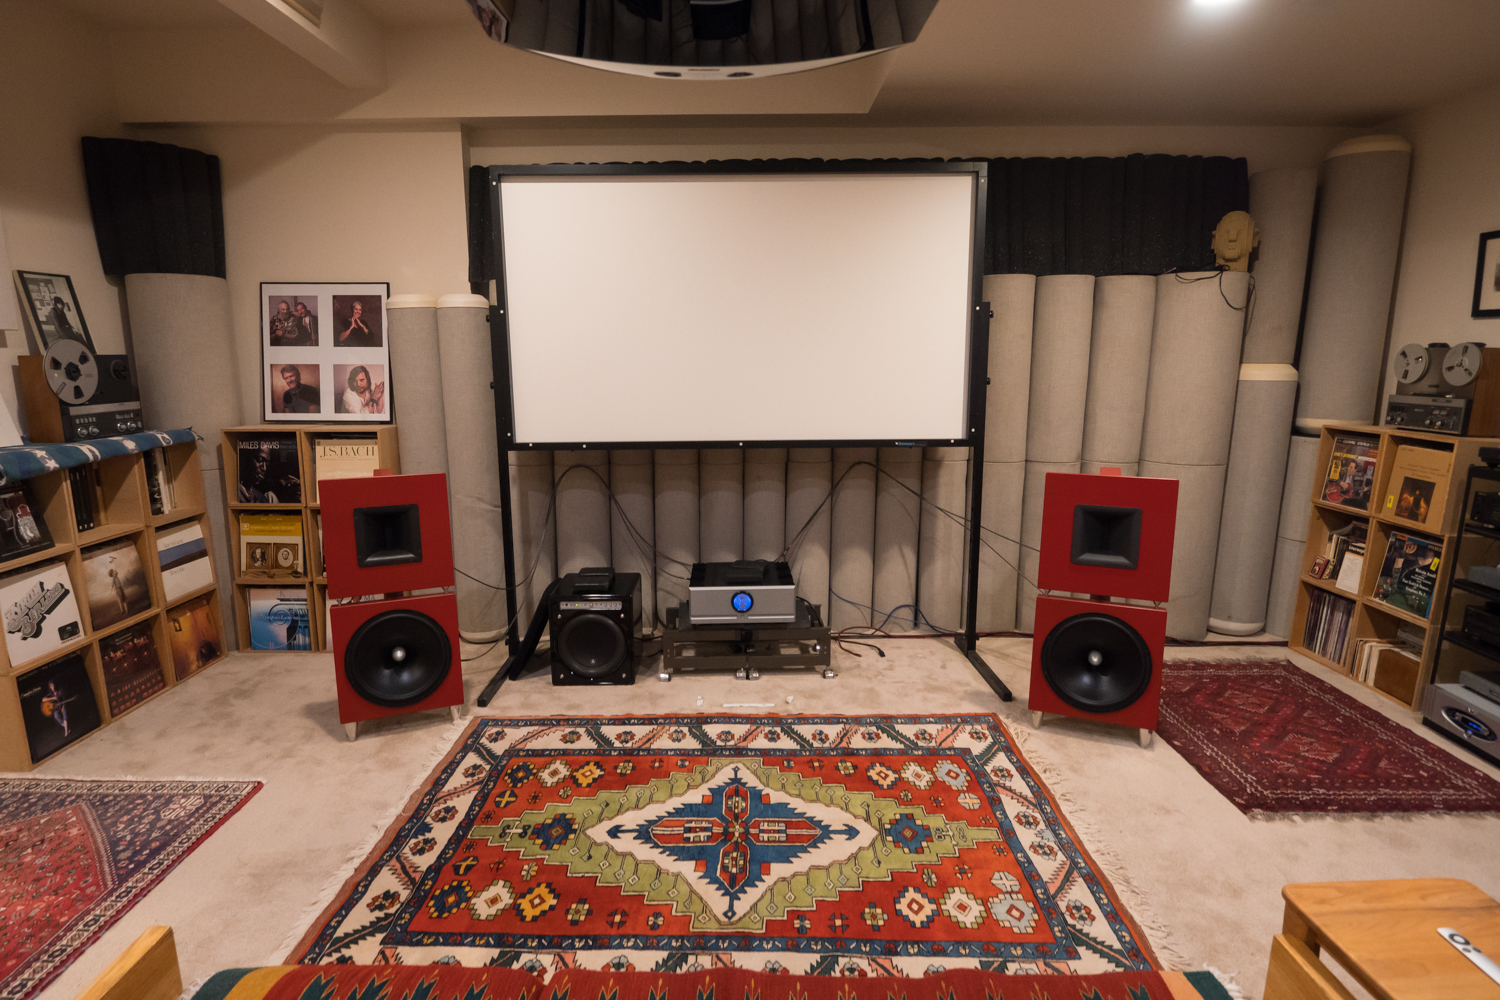 http://audiophilereview.com/images/CASmeeting1a.jpg